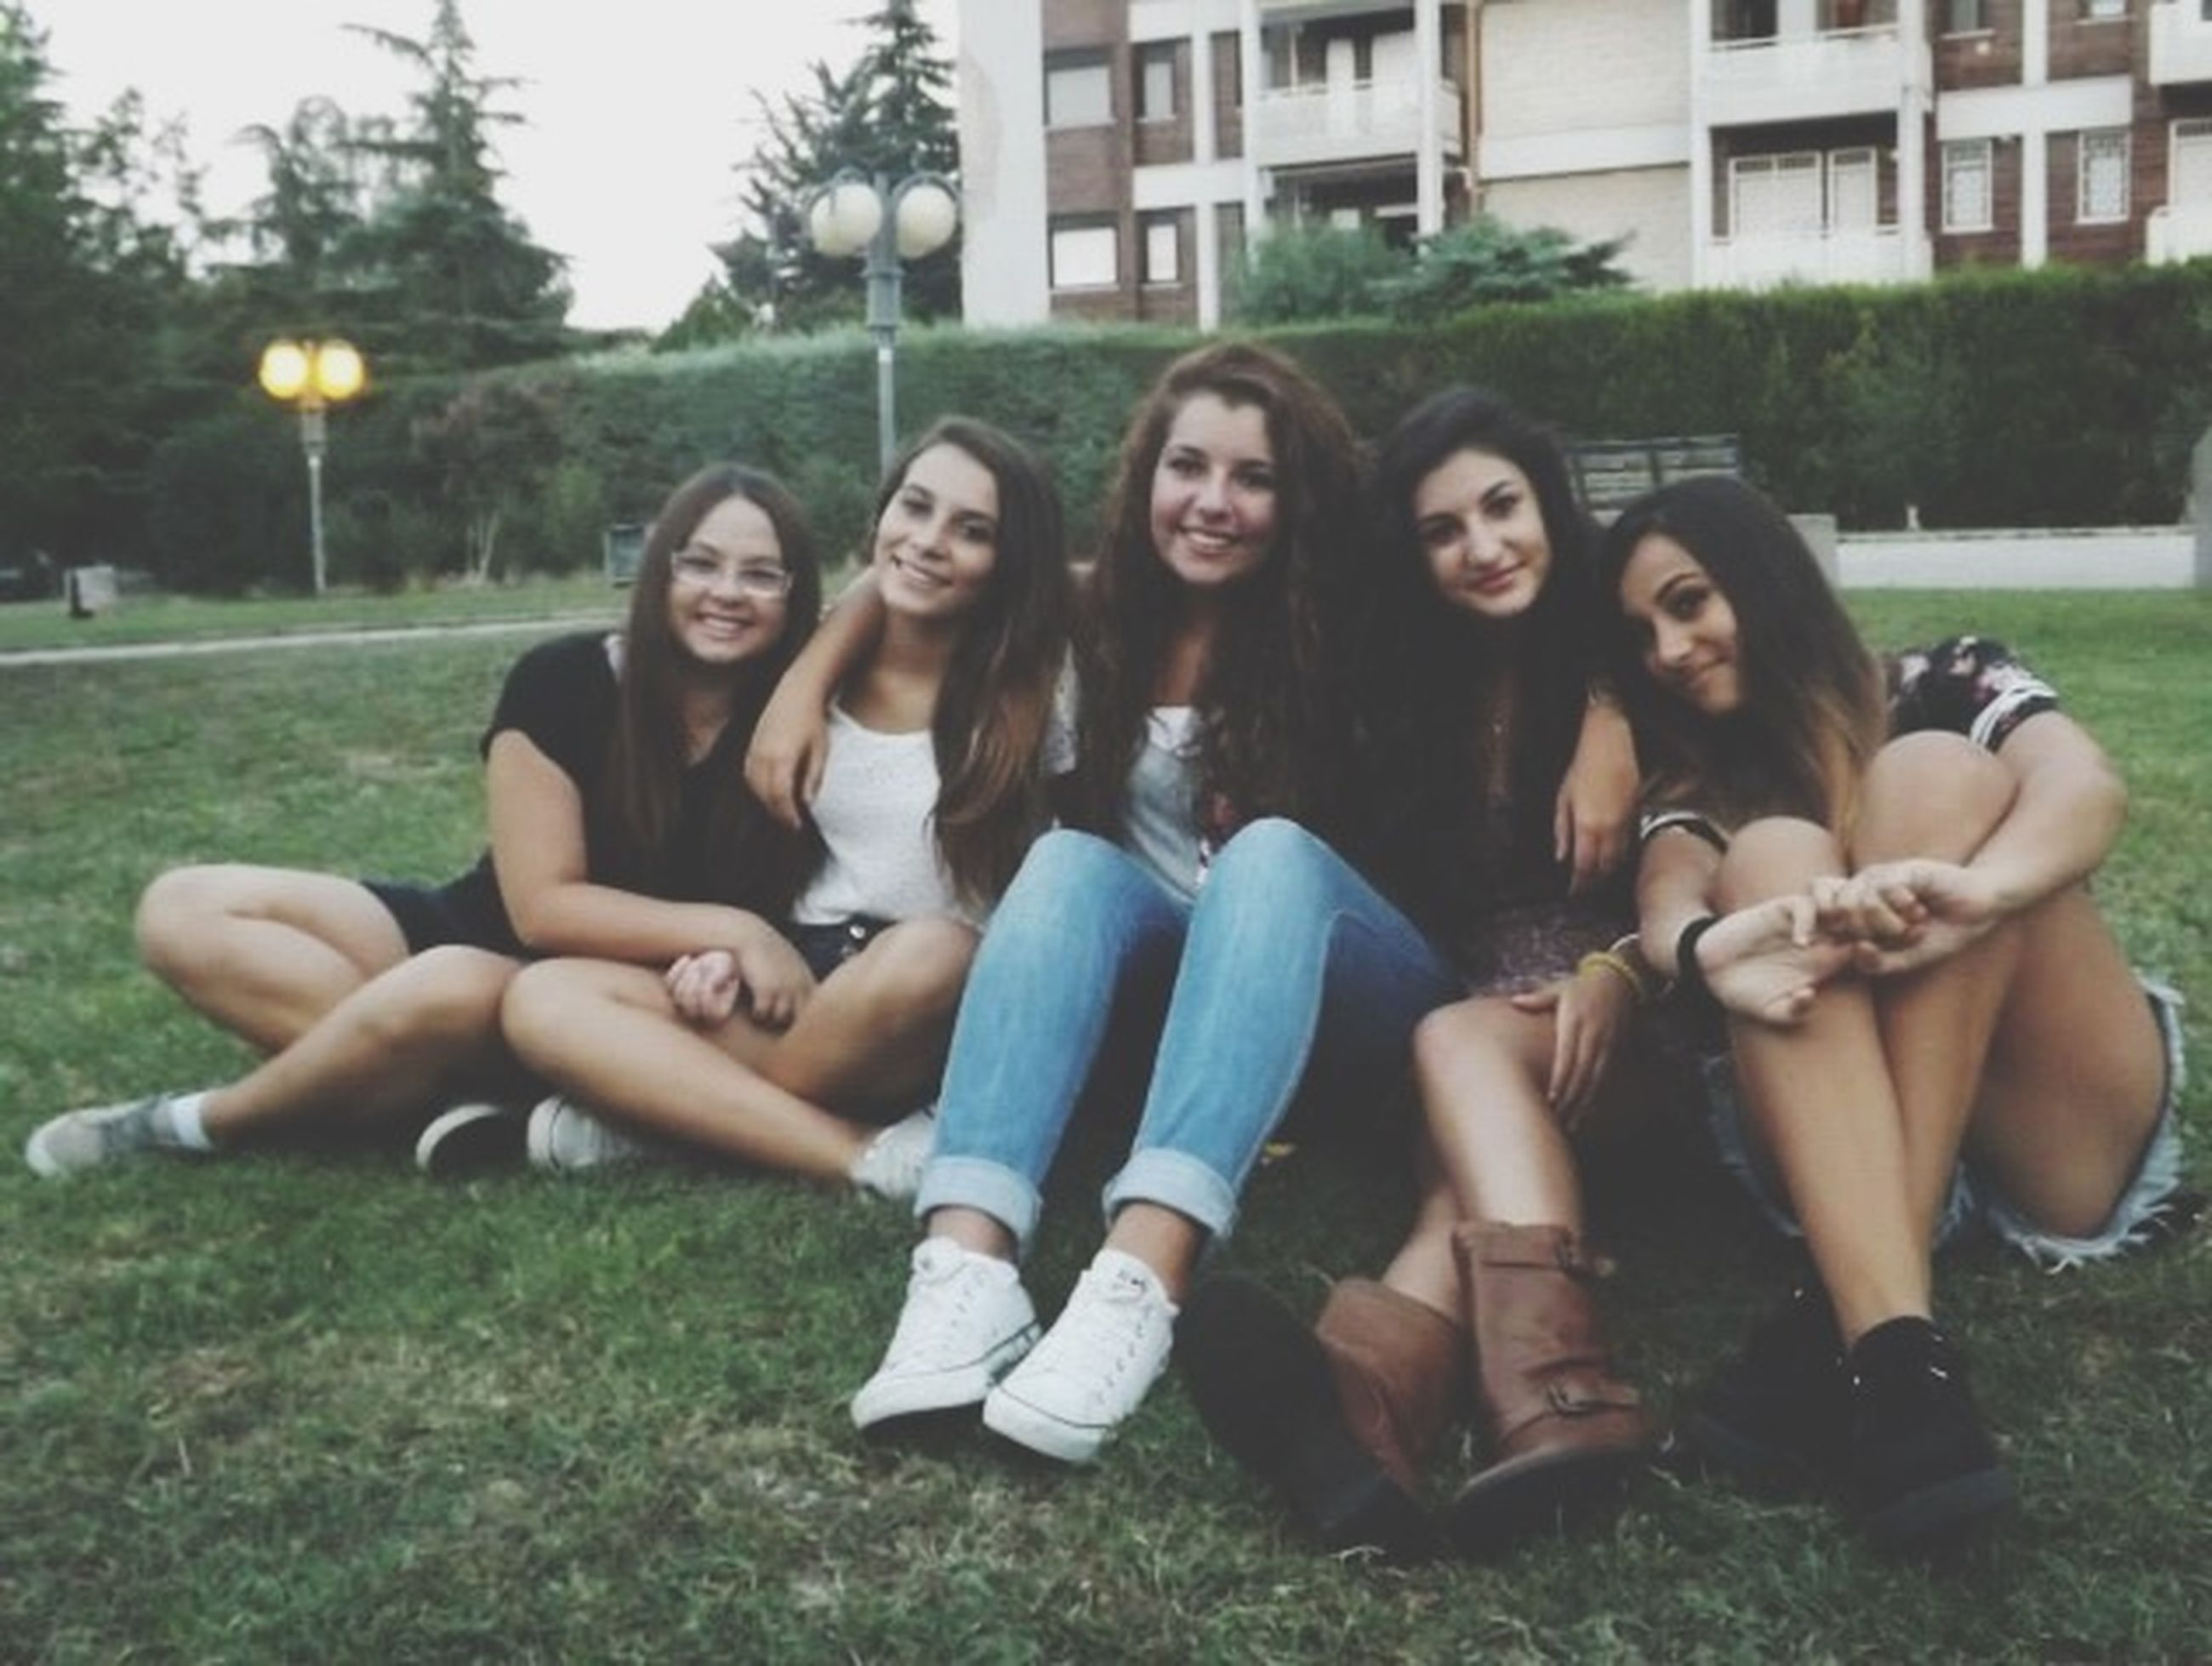 lifestyles, young adult, person, young women, leisure activity, togetherness, bonding, smiling, casual clothing, happiness, love, sitting, looking at camera, friendship, standing, full length, front view